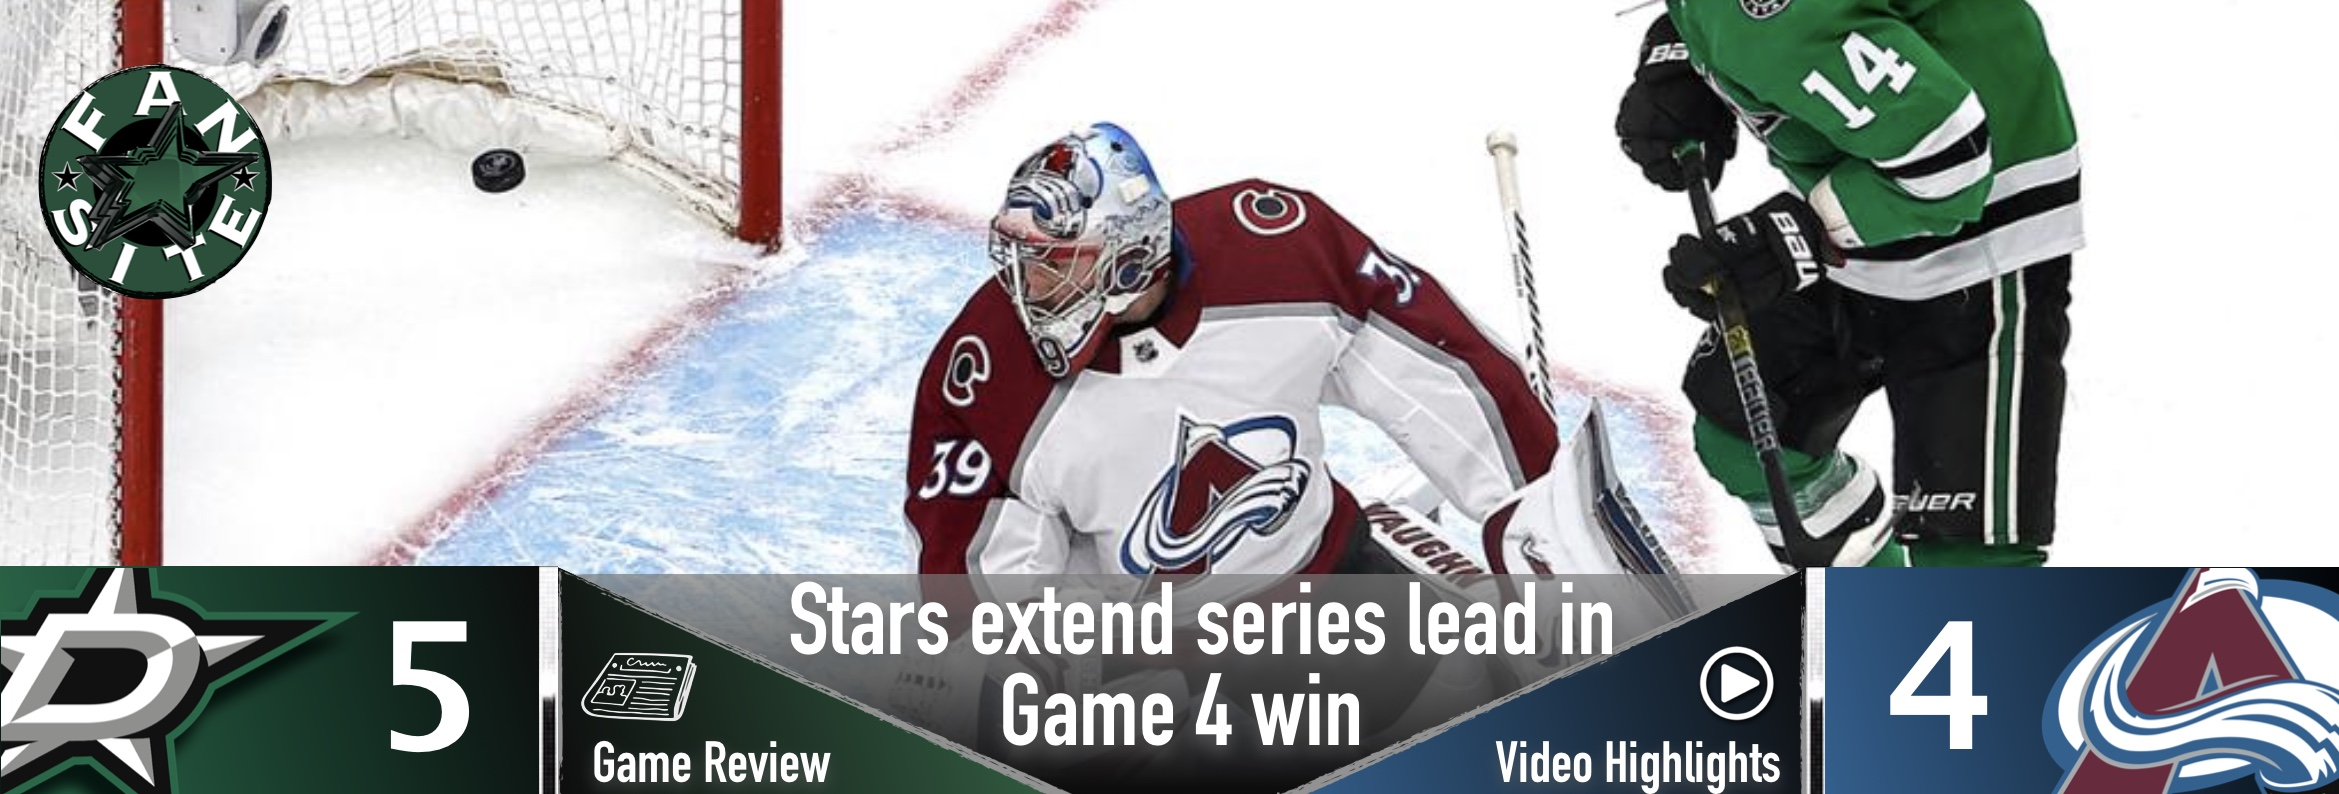 Stars extend series lead in Game 4 win